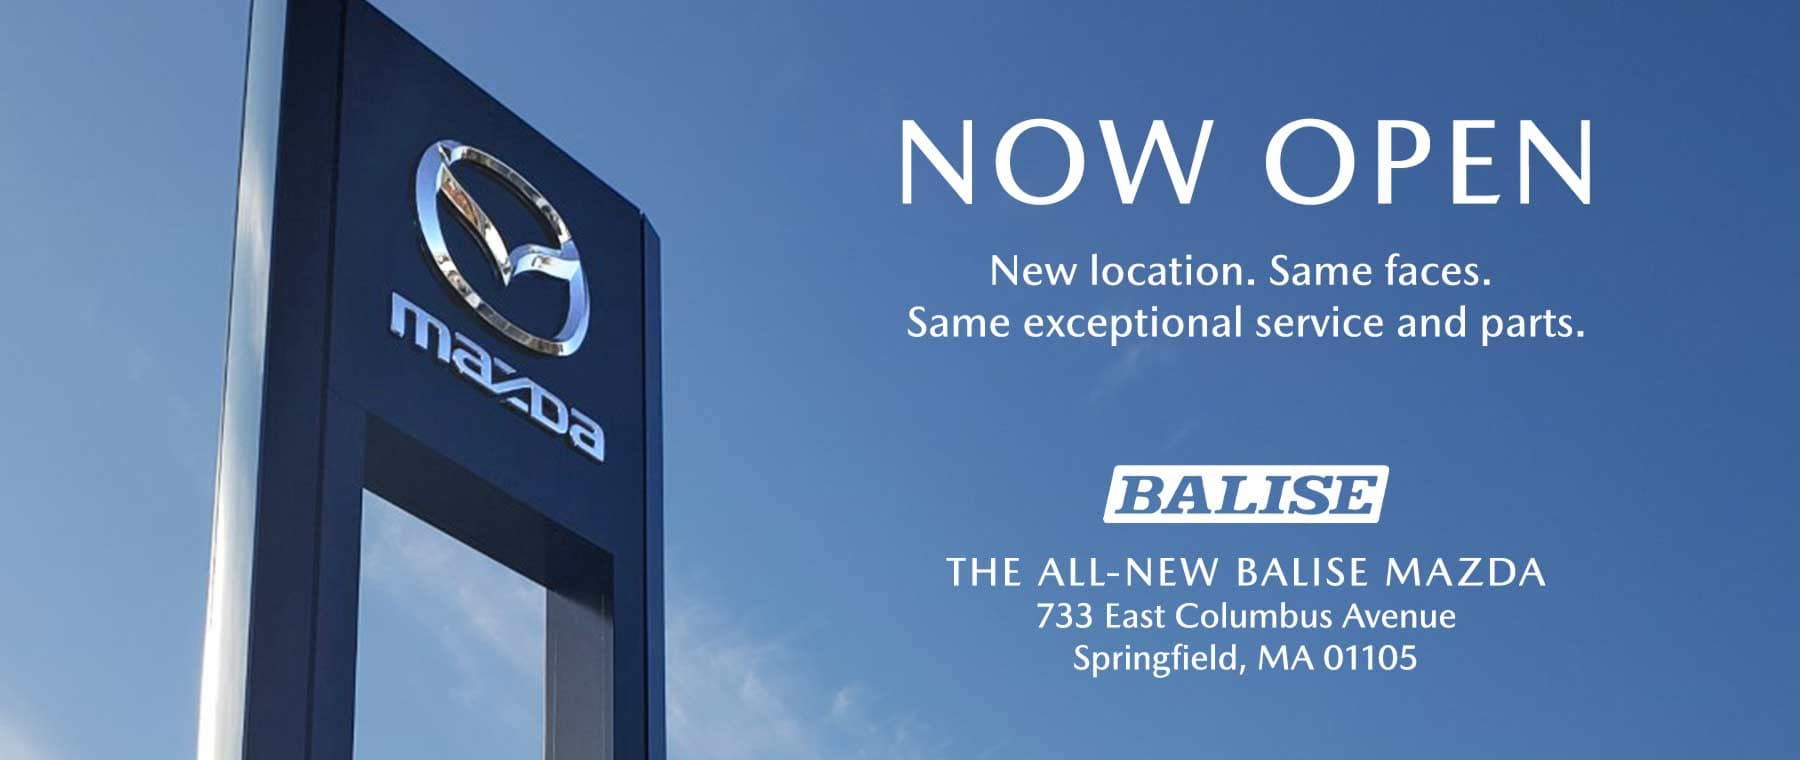 Now Open - The All New Balise Mazda